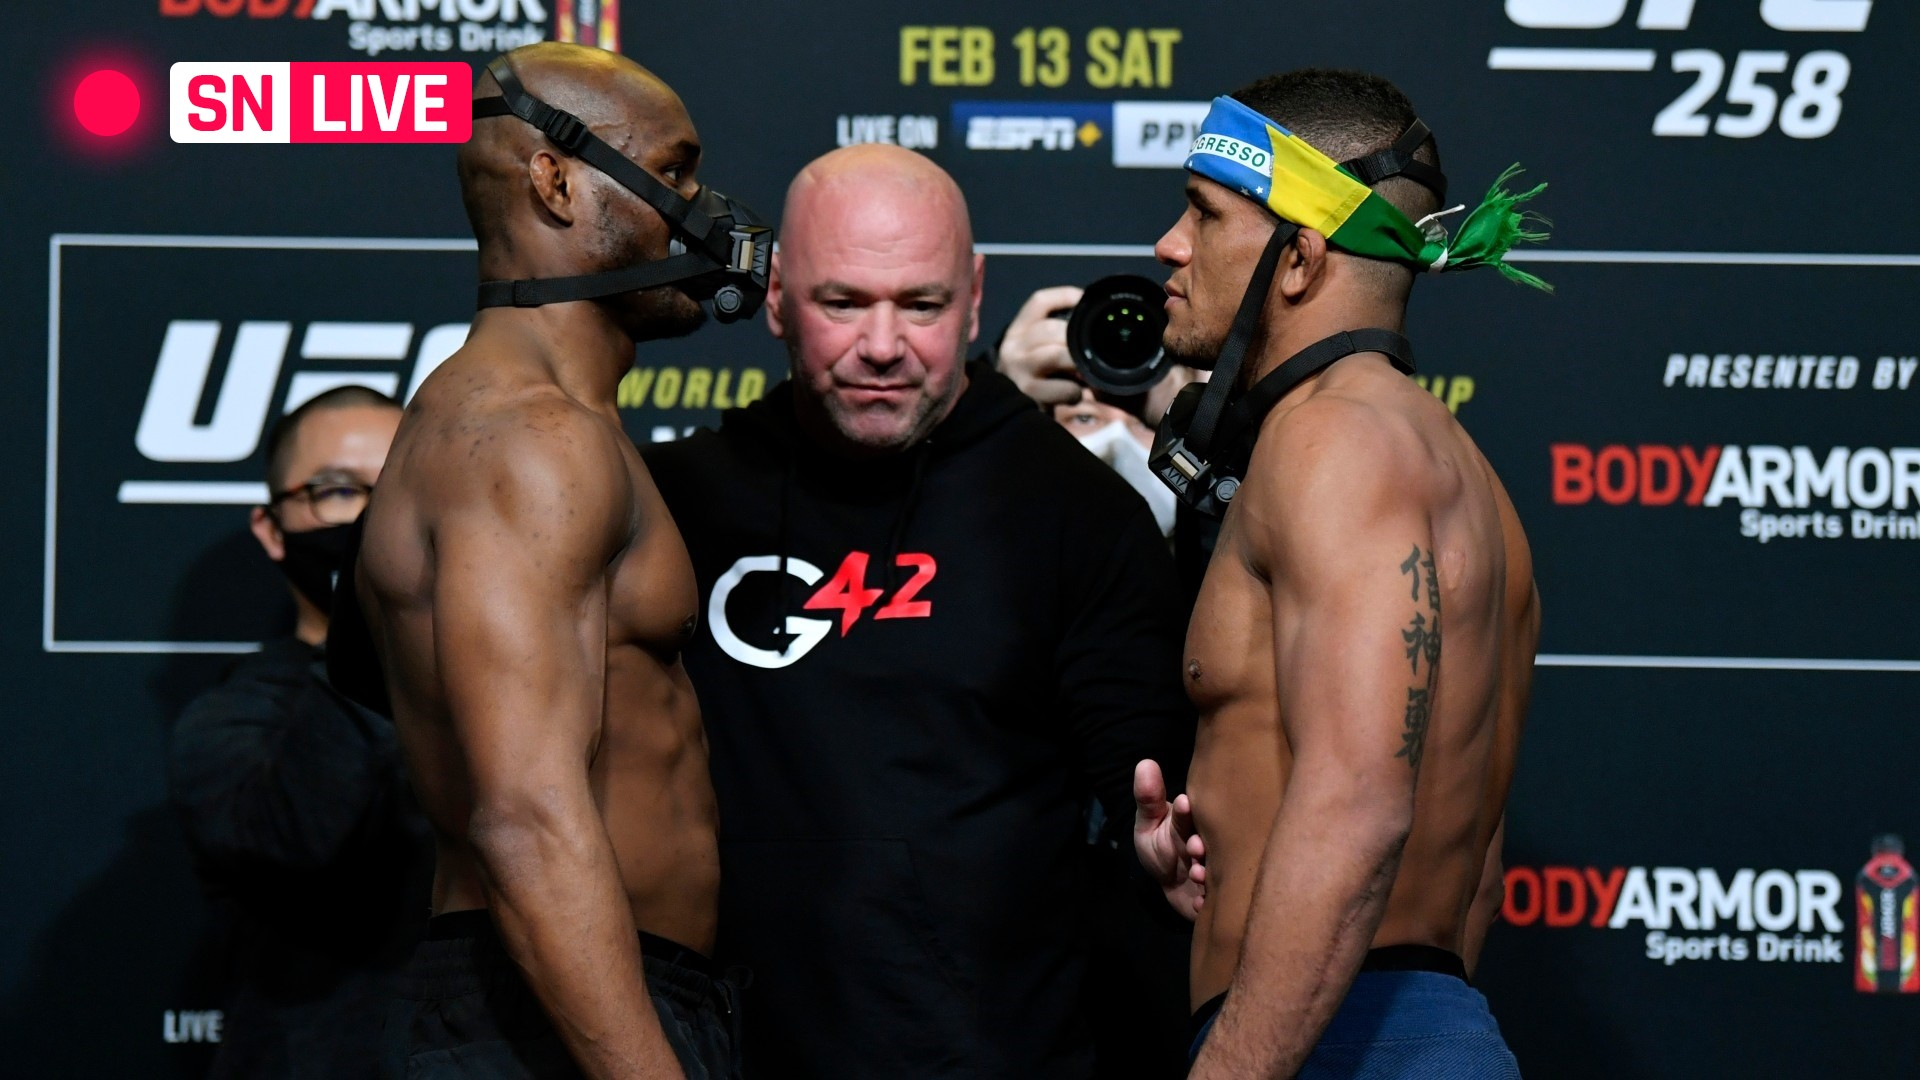 UFC 258 results: Kamaru Usman patiently pulverizes Gilbert Burns, defends title with 3rd-round TKO